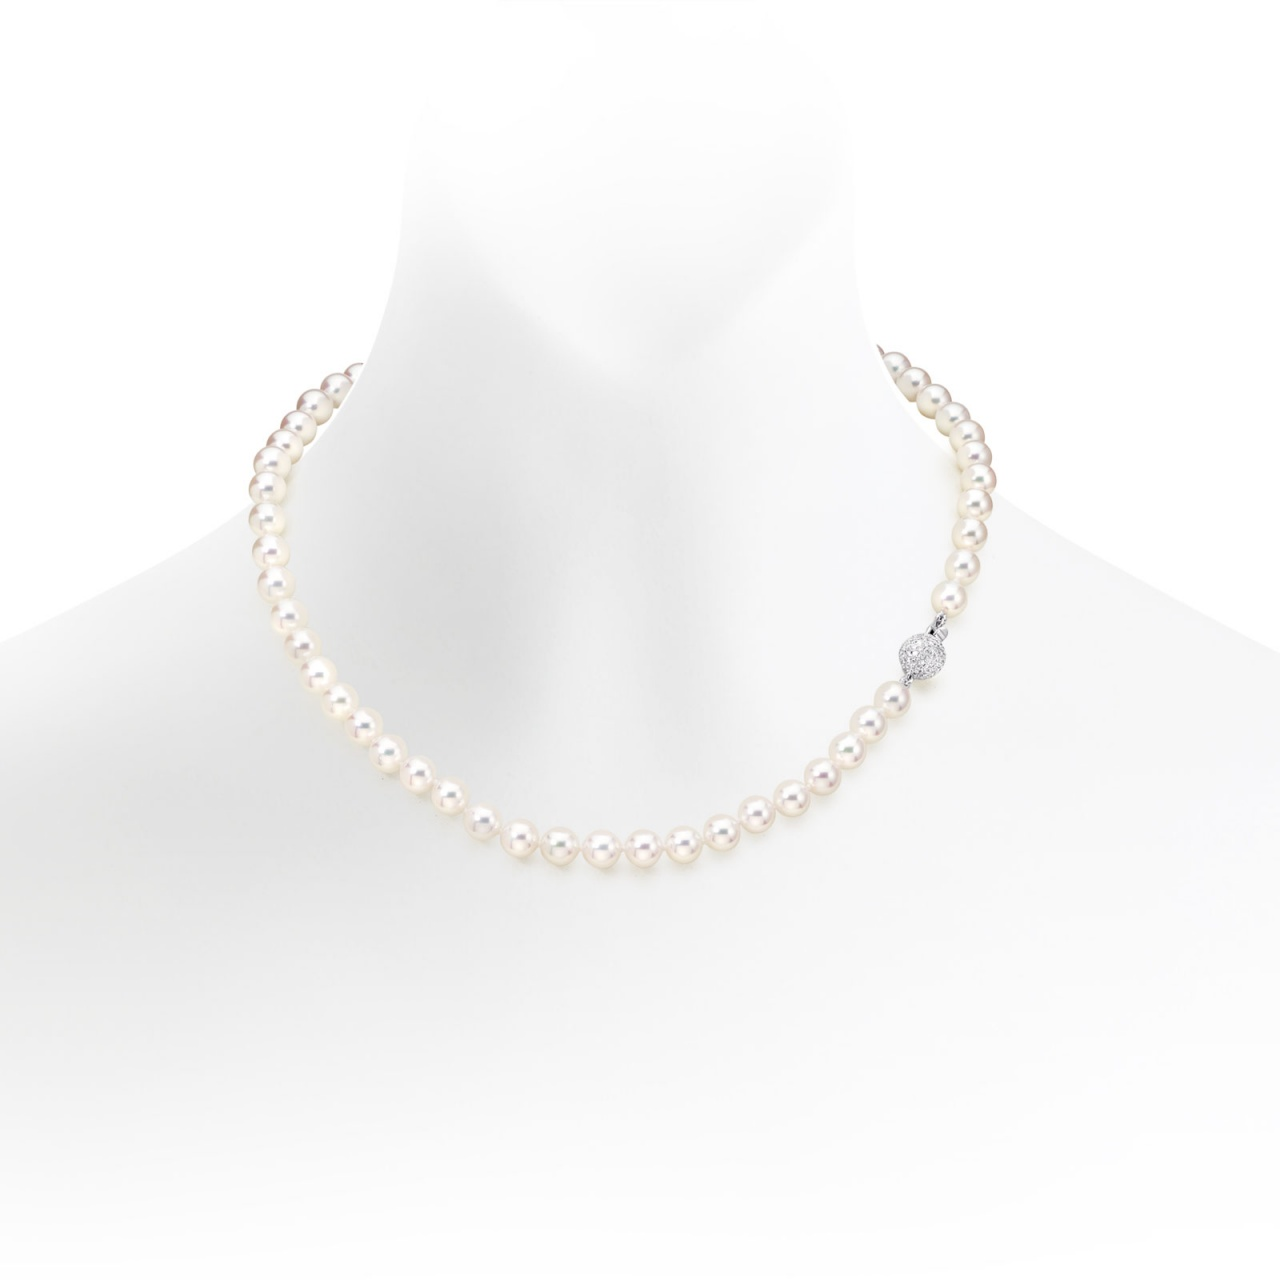 Sonatina Diamond and Pearl Necklace-ANWRWG0267-1